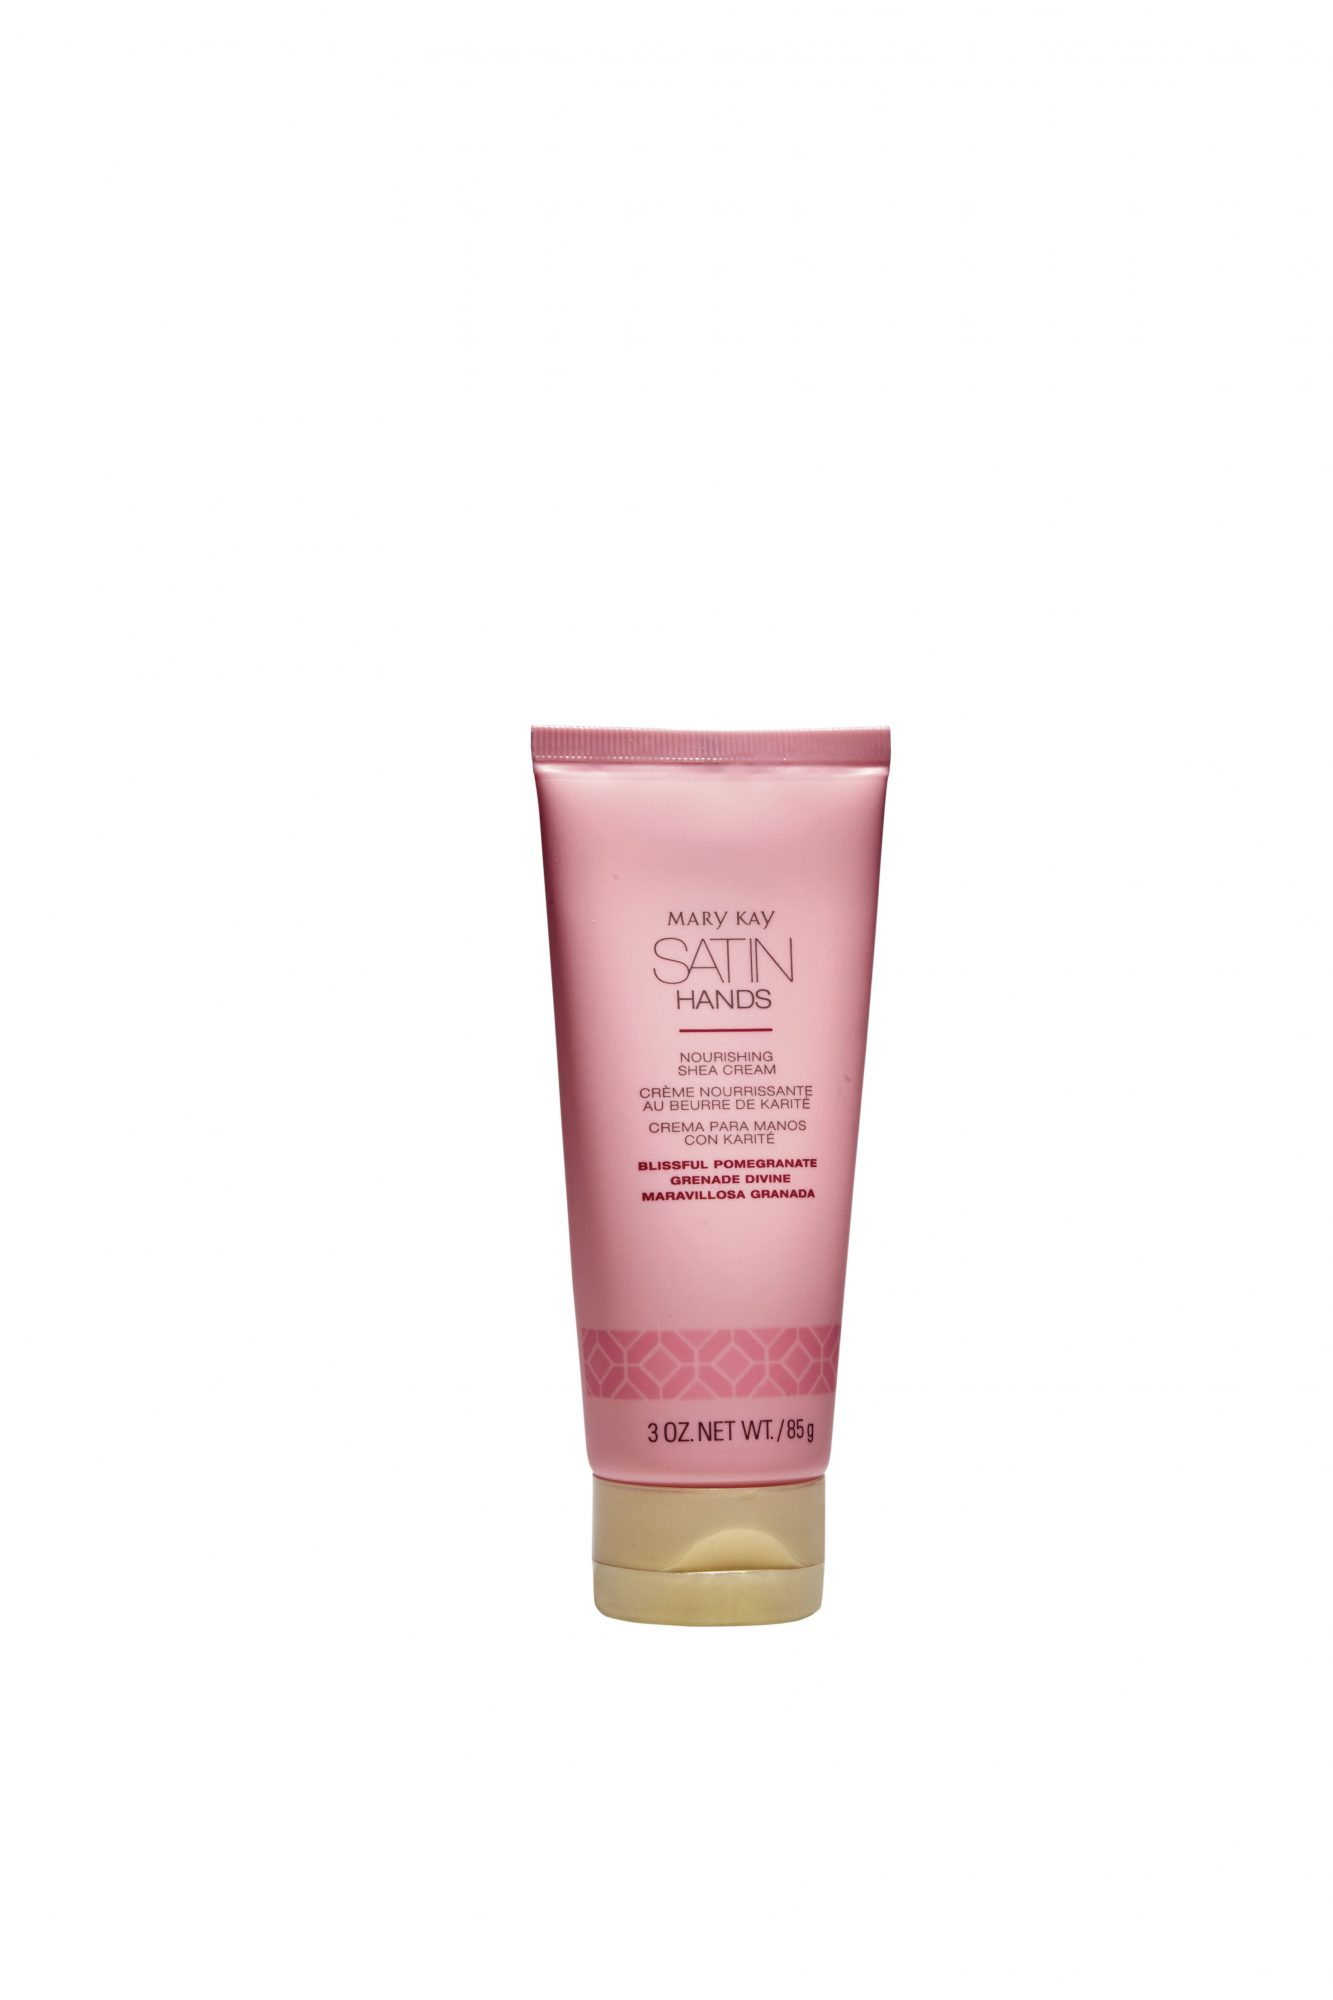 Limited-Edition Blissful Pomegranate Satin Hands Nourishing Shea Cream